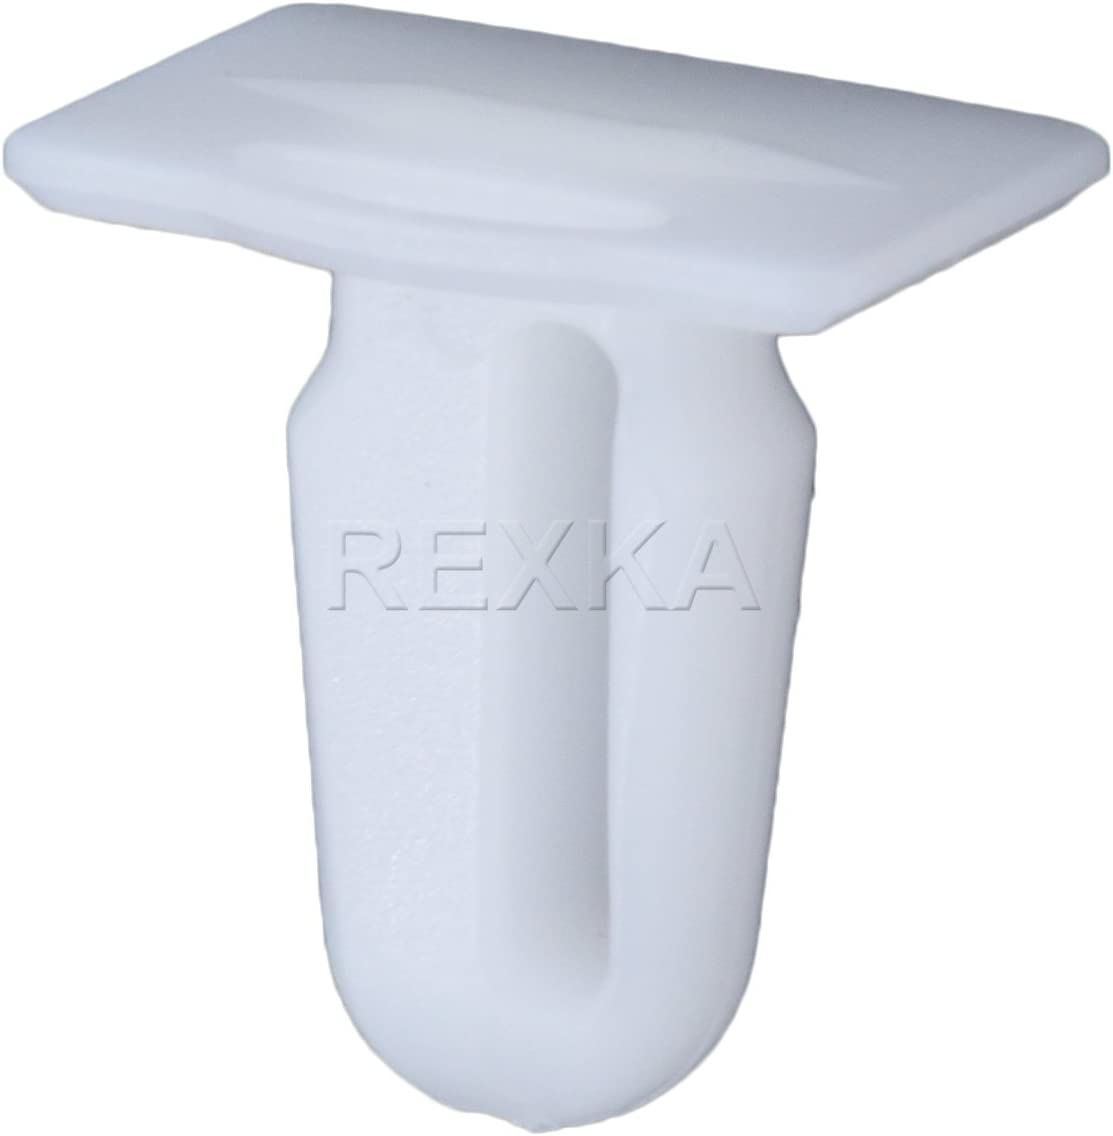 OFFer Rexka Door Sill Covering Trim Clips BMW E31 OFFicial site for 51471840960 E30